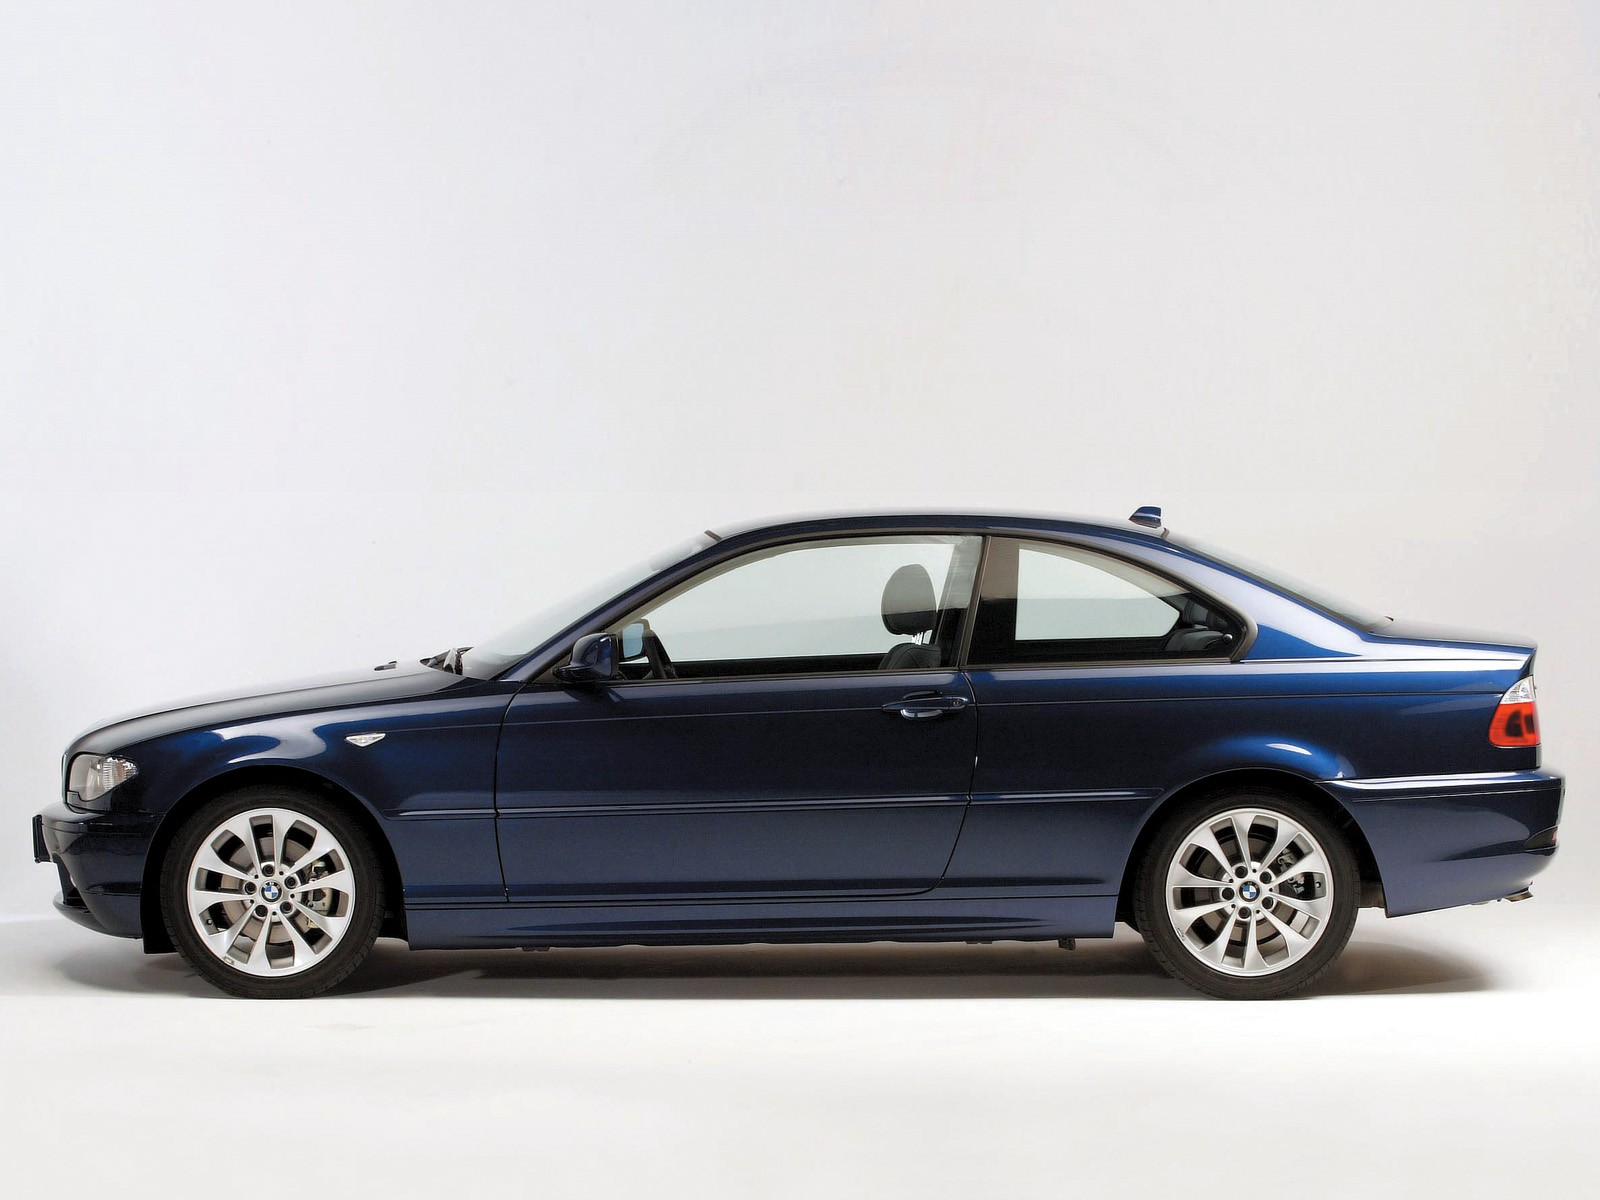 New Infiniti G35 Coupe >> BMW 3 Series Coupe (E46) specs & photos - 2003, 2004, 2005, 2006 - autoevolution